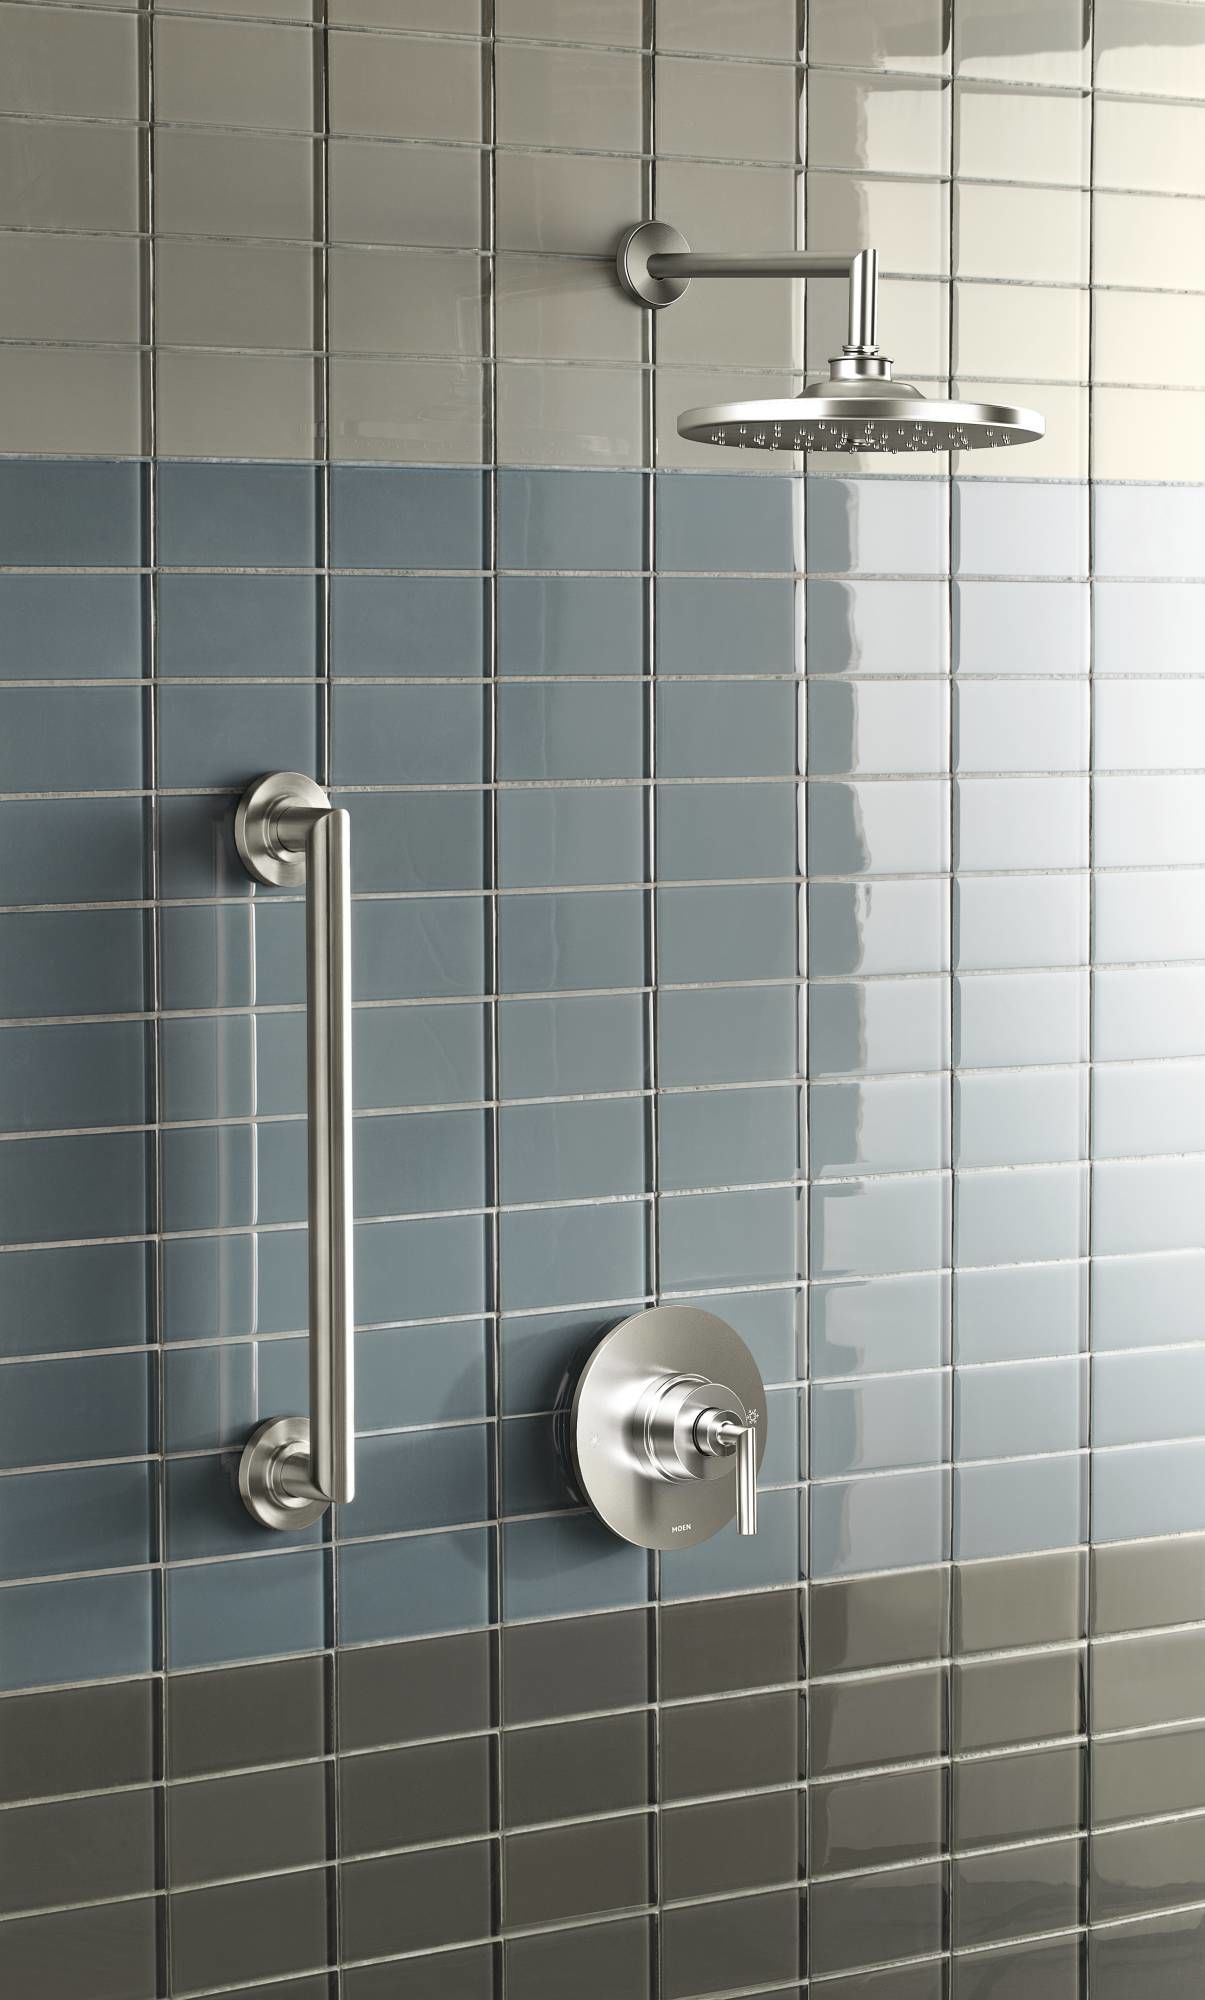 Moen 925 Chrome Pressure Balanced Shower System with Rain Shower, Diverter,  and Hand Shower from the Arris Collection (Valves